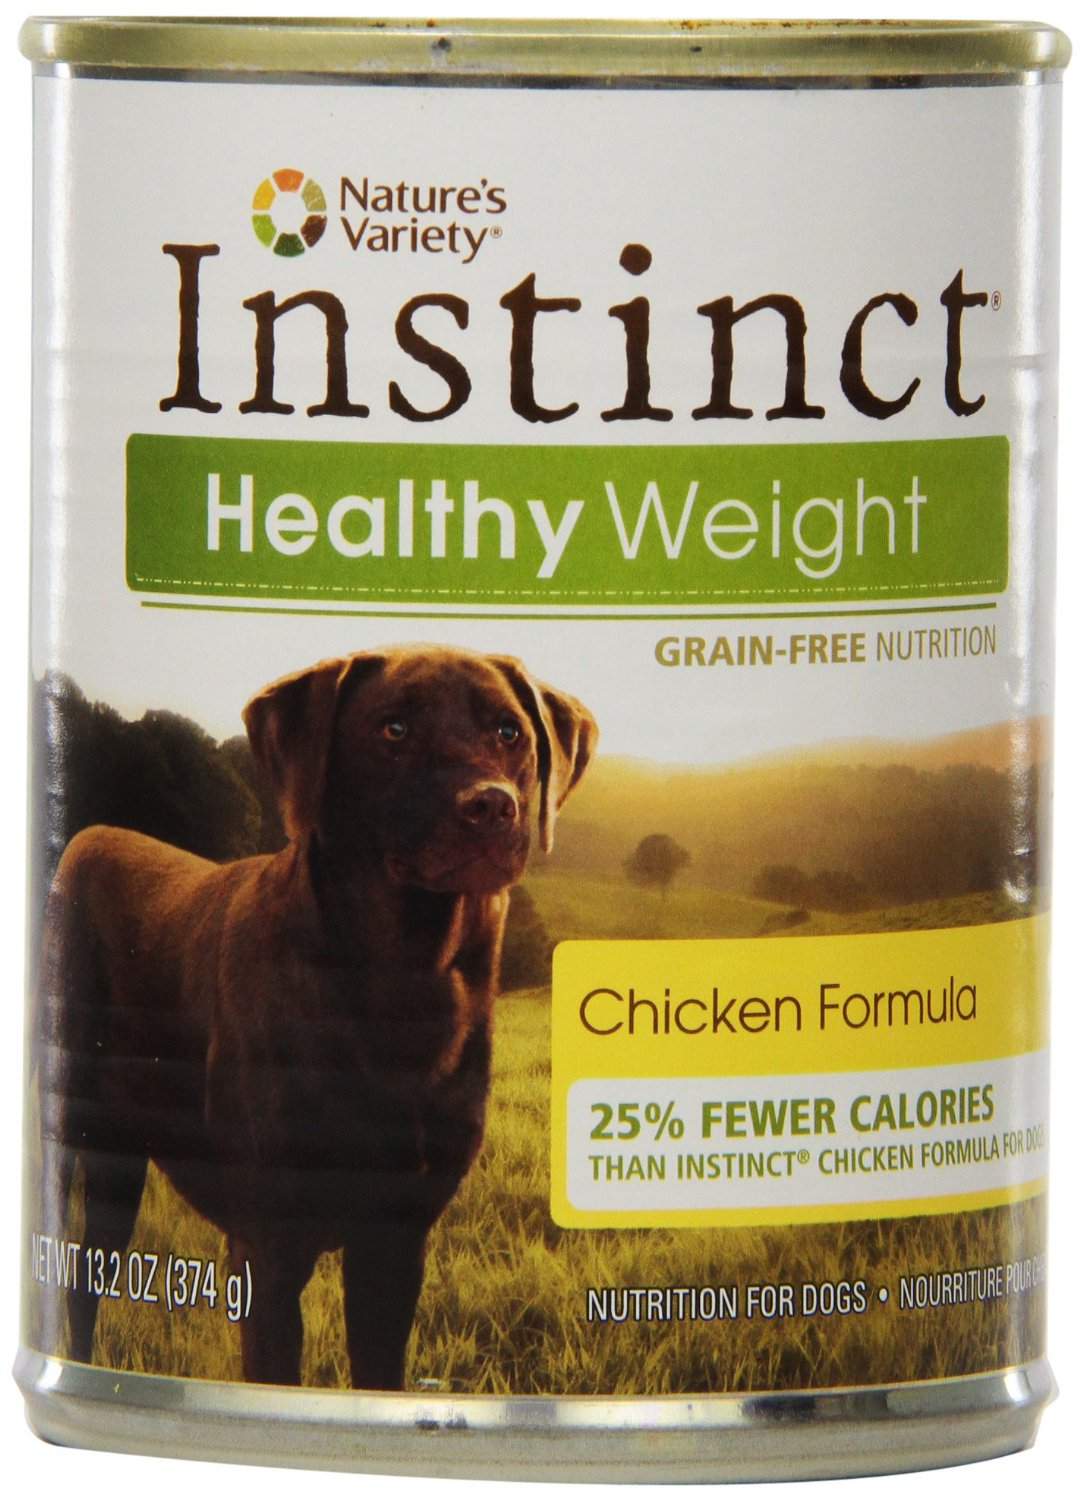 Nature's Variety Instinct Healthy Weight Cans for Dogs